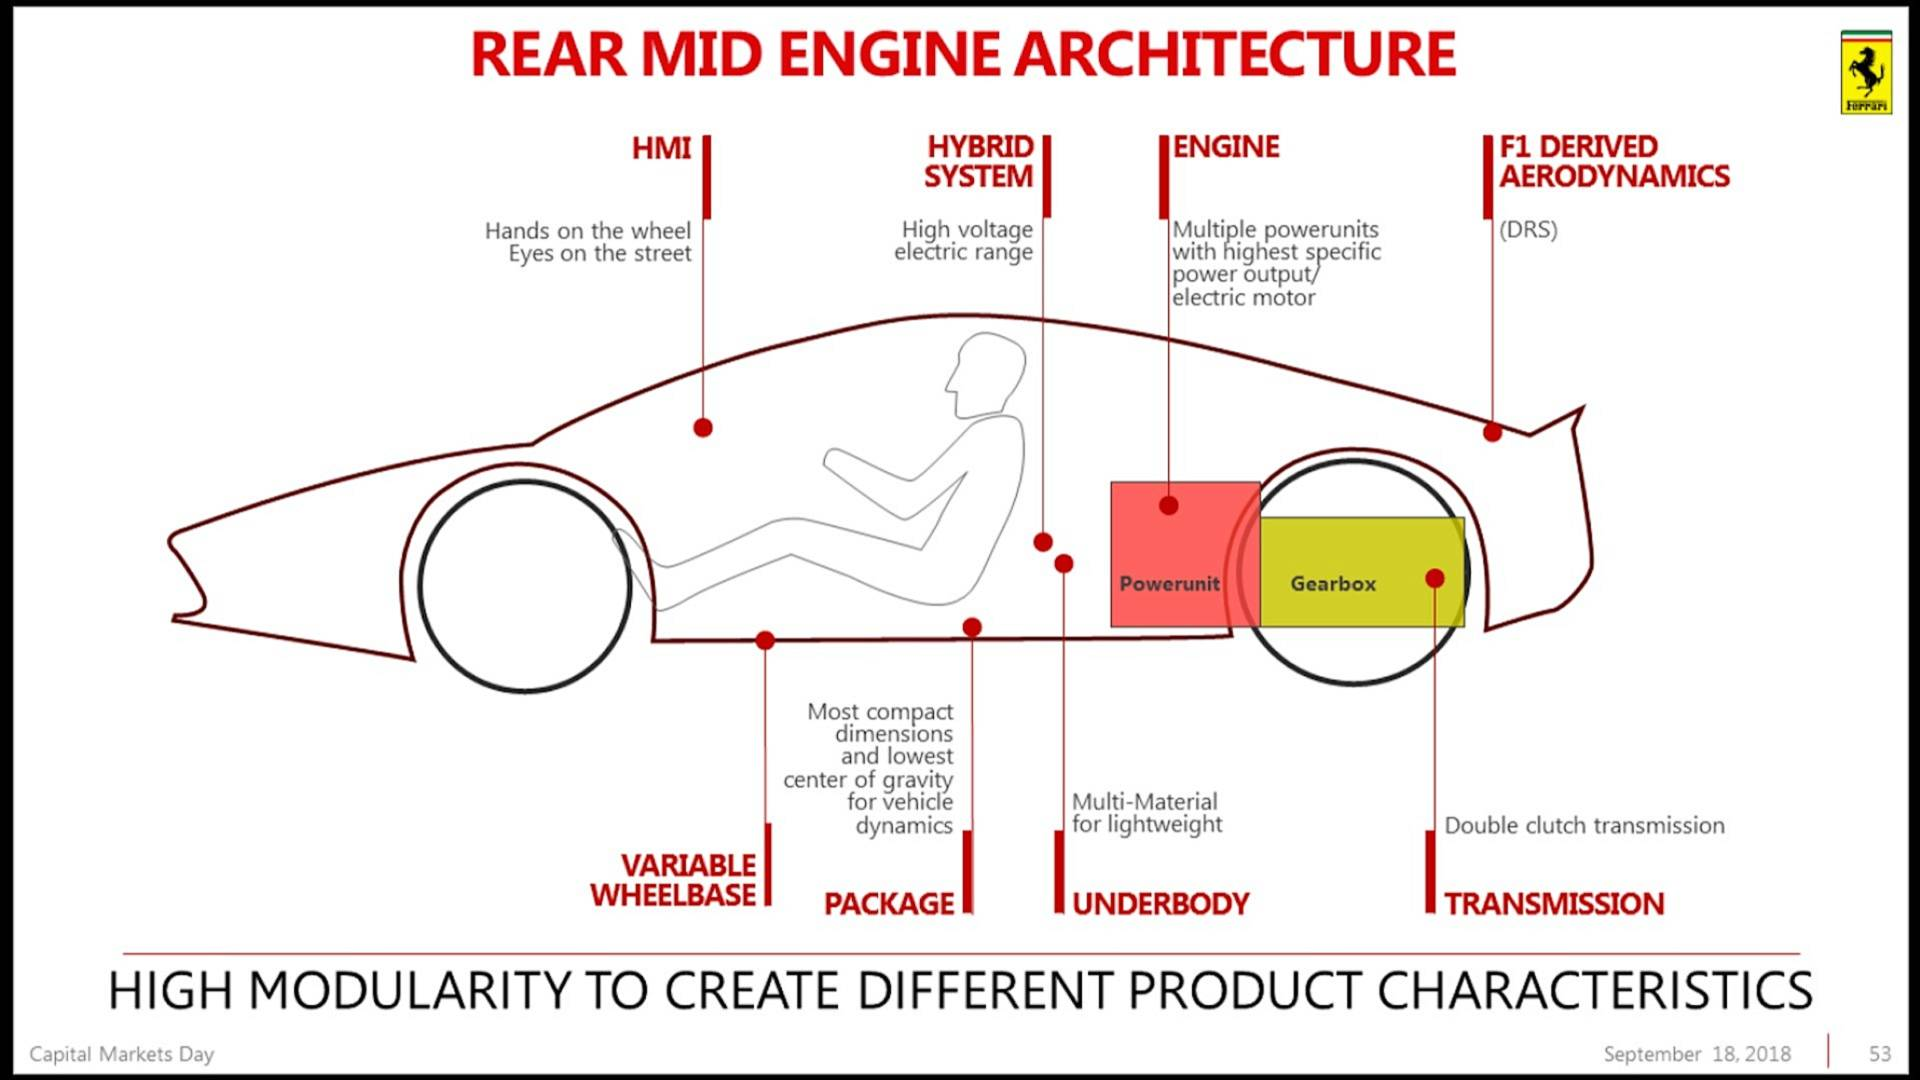 Ferrari Confirms Purosangue Suv Laferrari Successor V6 Engine Formula 1 Diagram Capital Markets Day 2018 Presentation